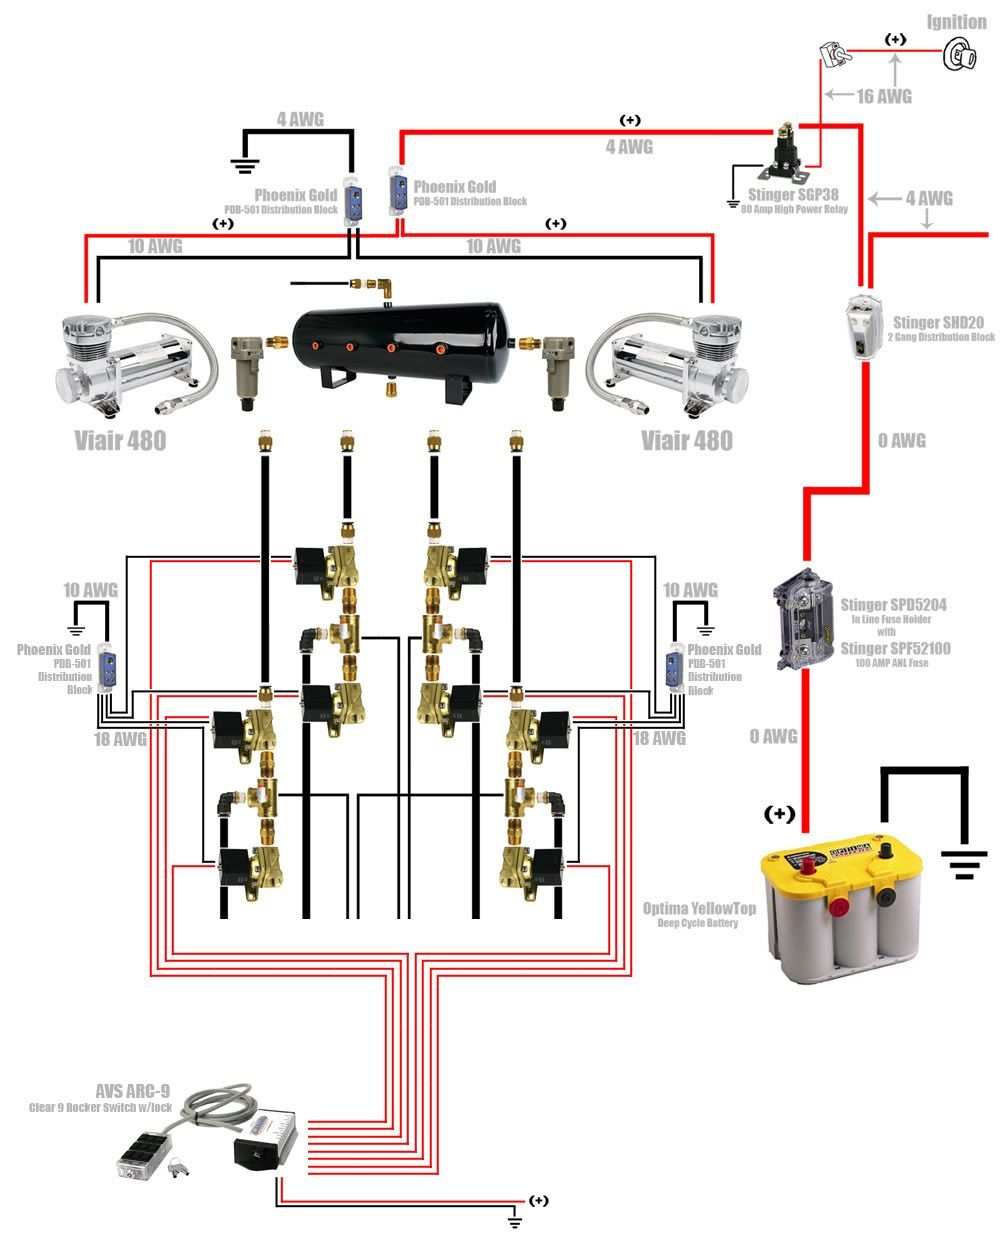 car air ride wiring diagram wiring diagram new harley air ride schematic air ride schematic [ 1008 x 1238 Pixel ]